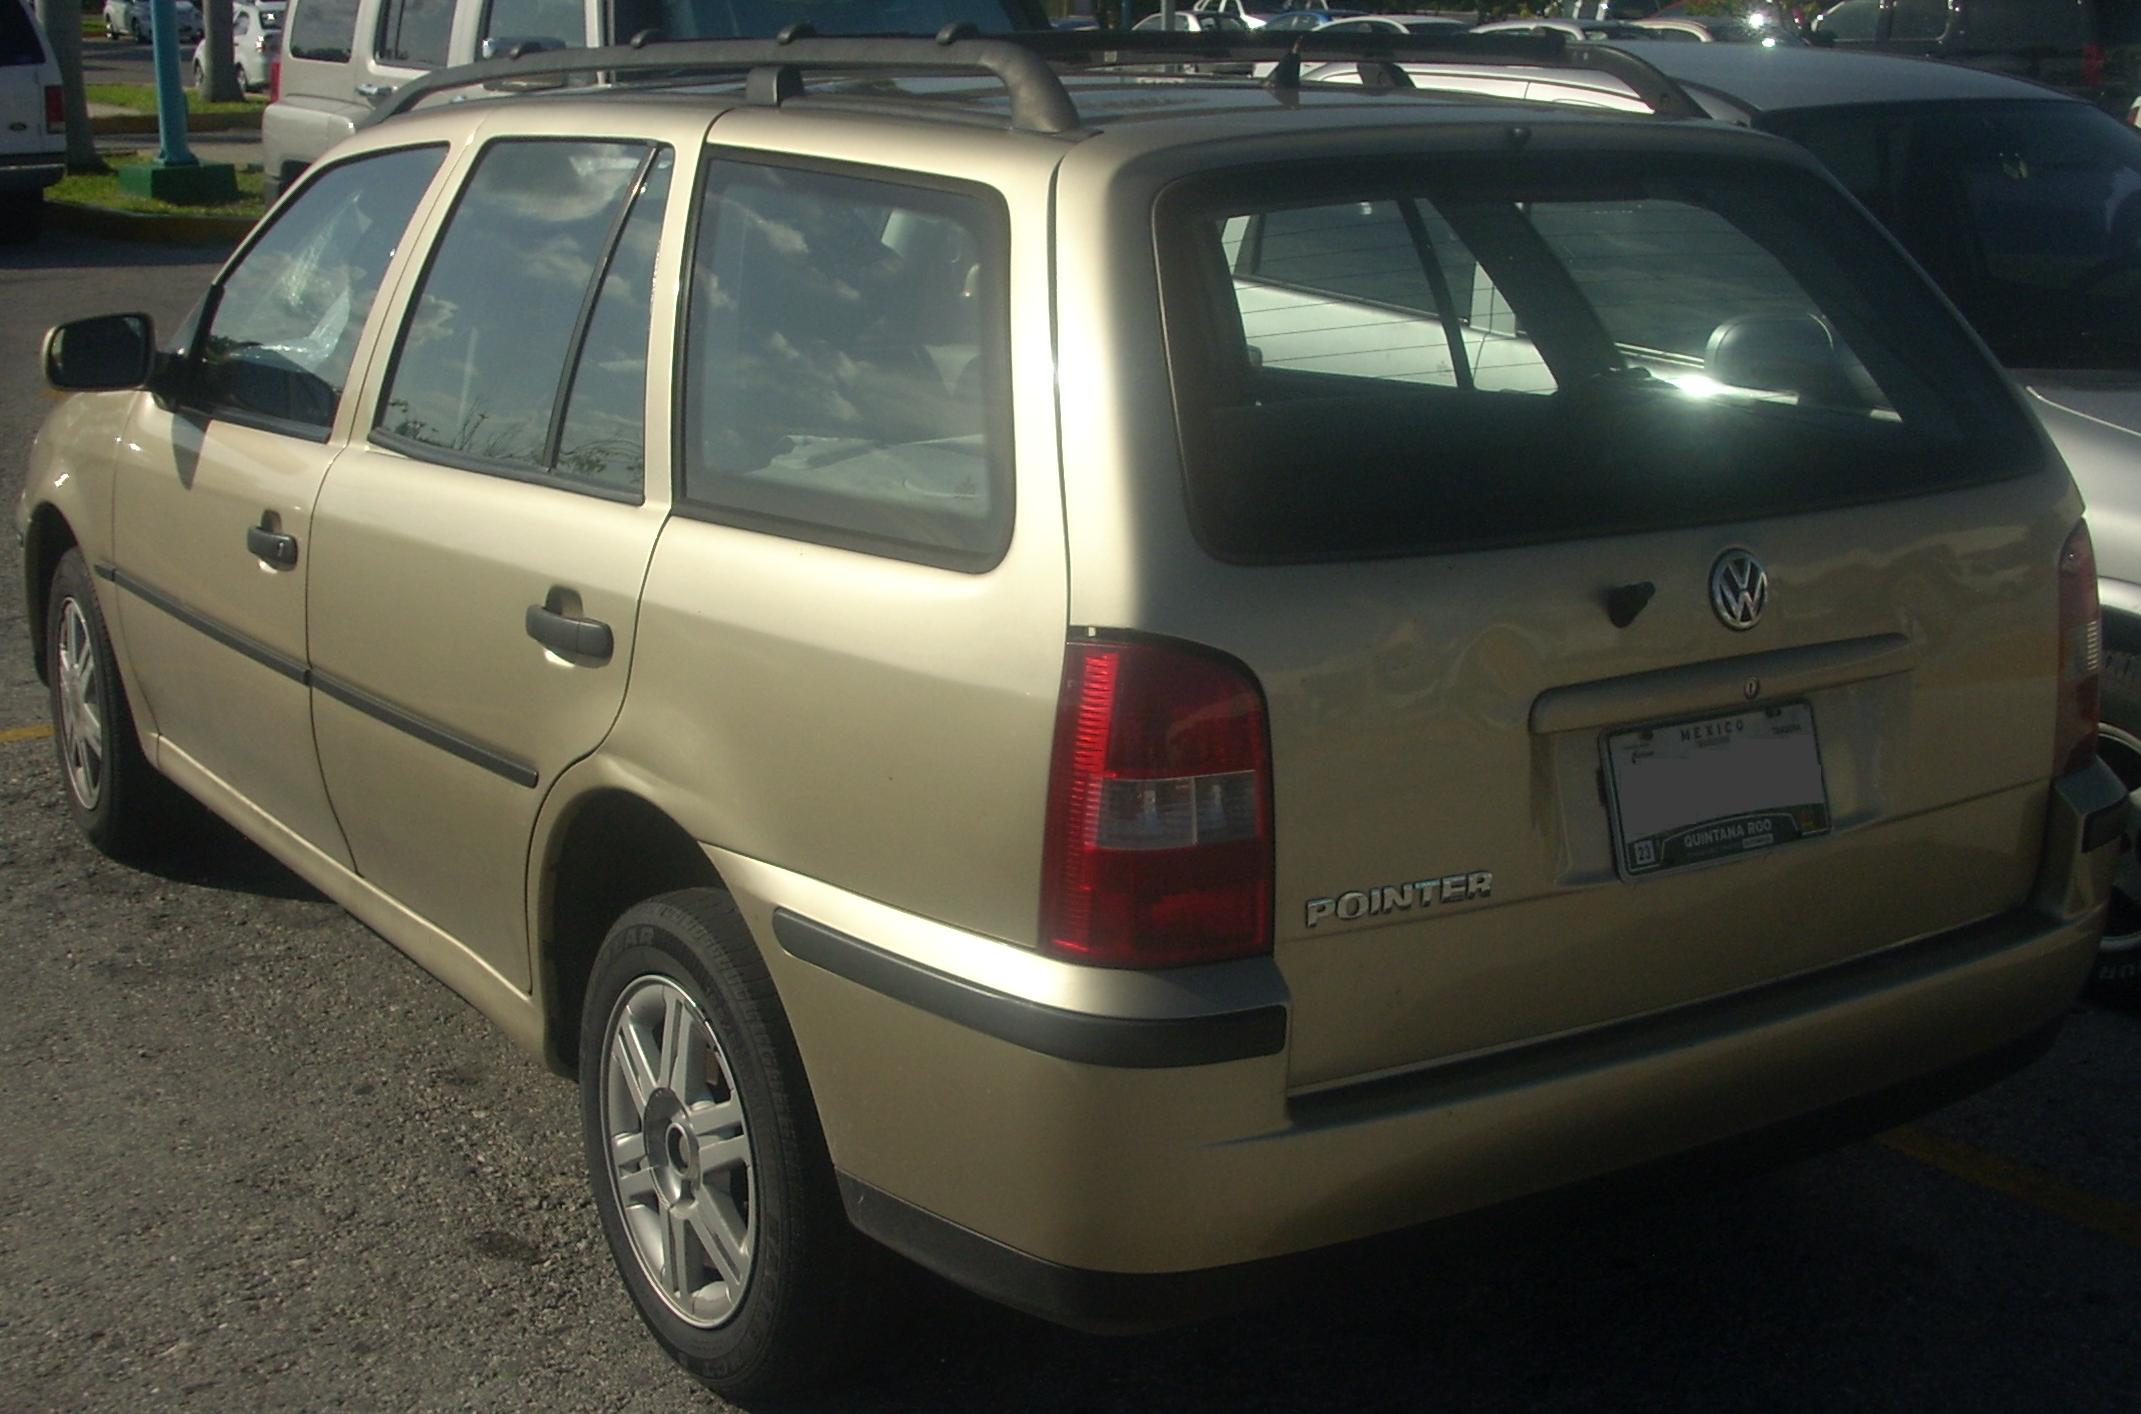 File Volkswagen Pointer Wagon  Rear  Jpg